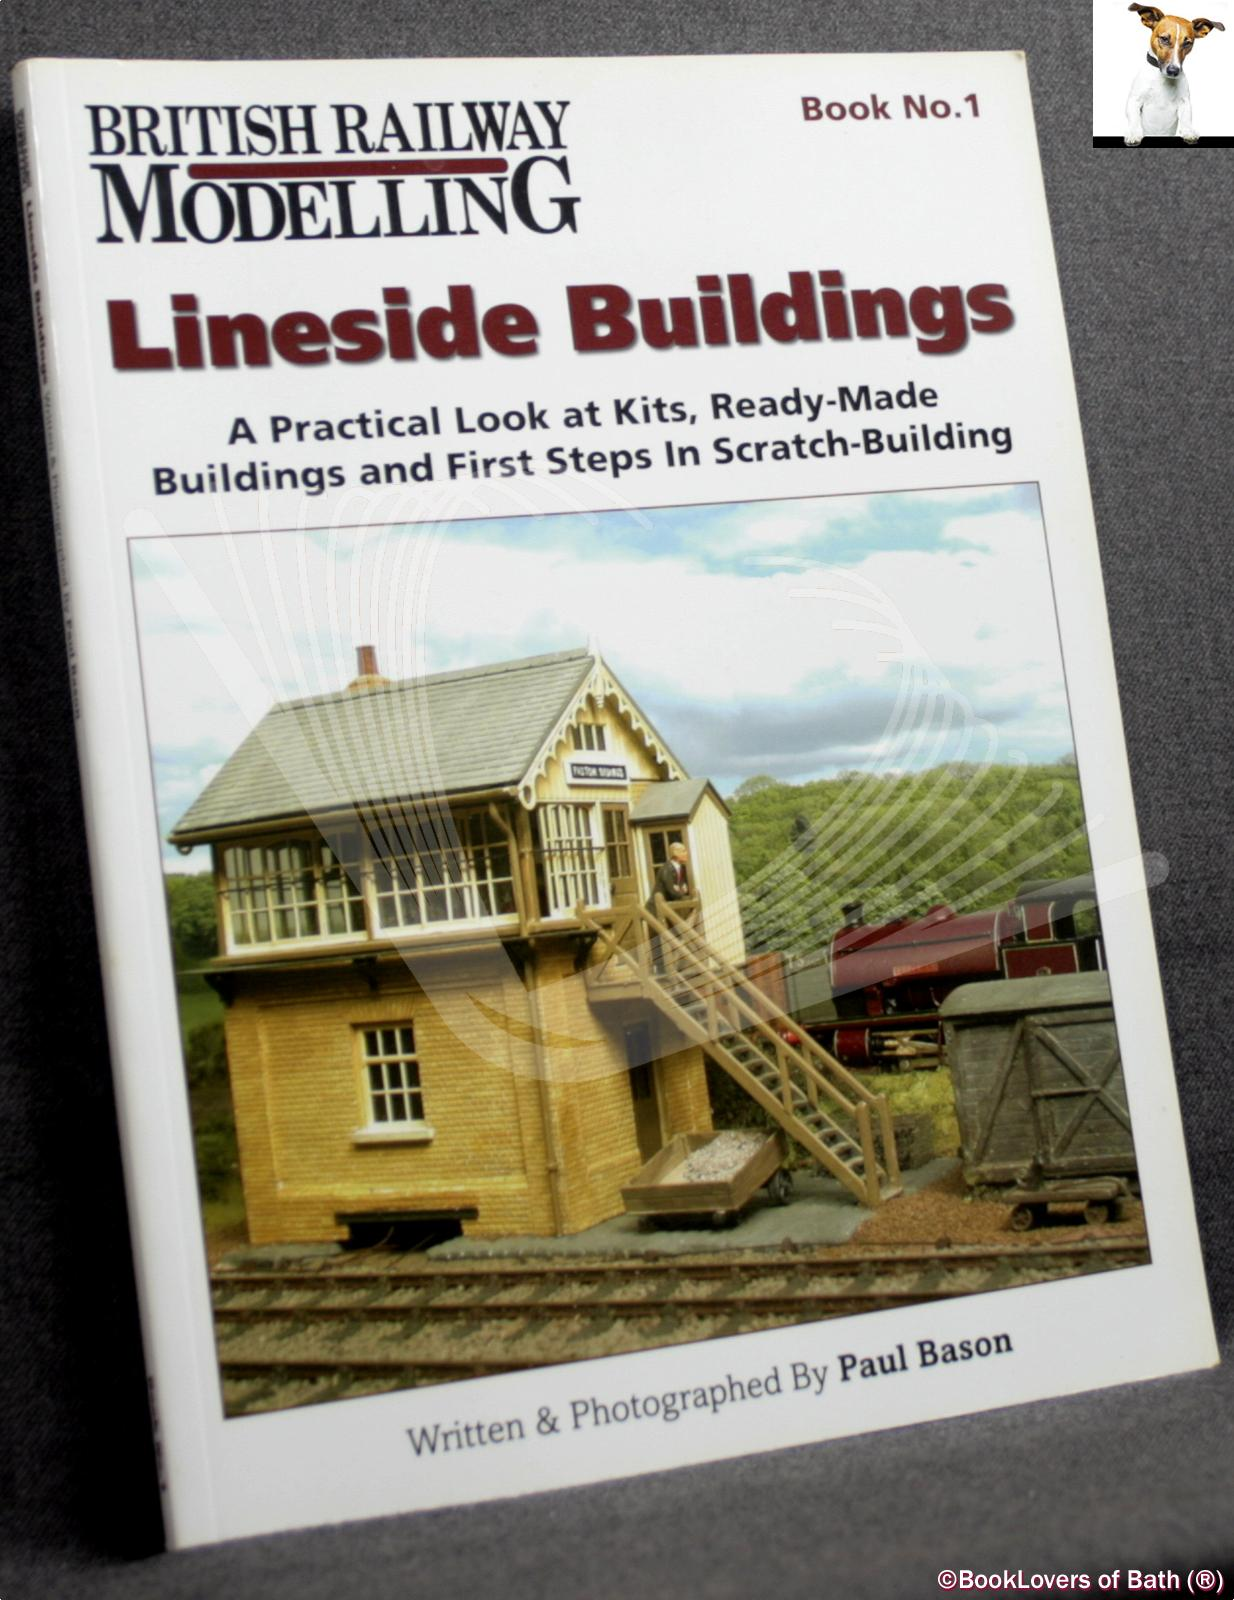 Lineside Buildings: A Practical Look at Kits, Ready-made Buildings and First Steps in Scratch-building - Paul Bason